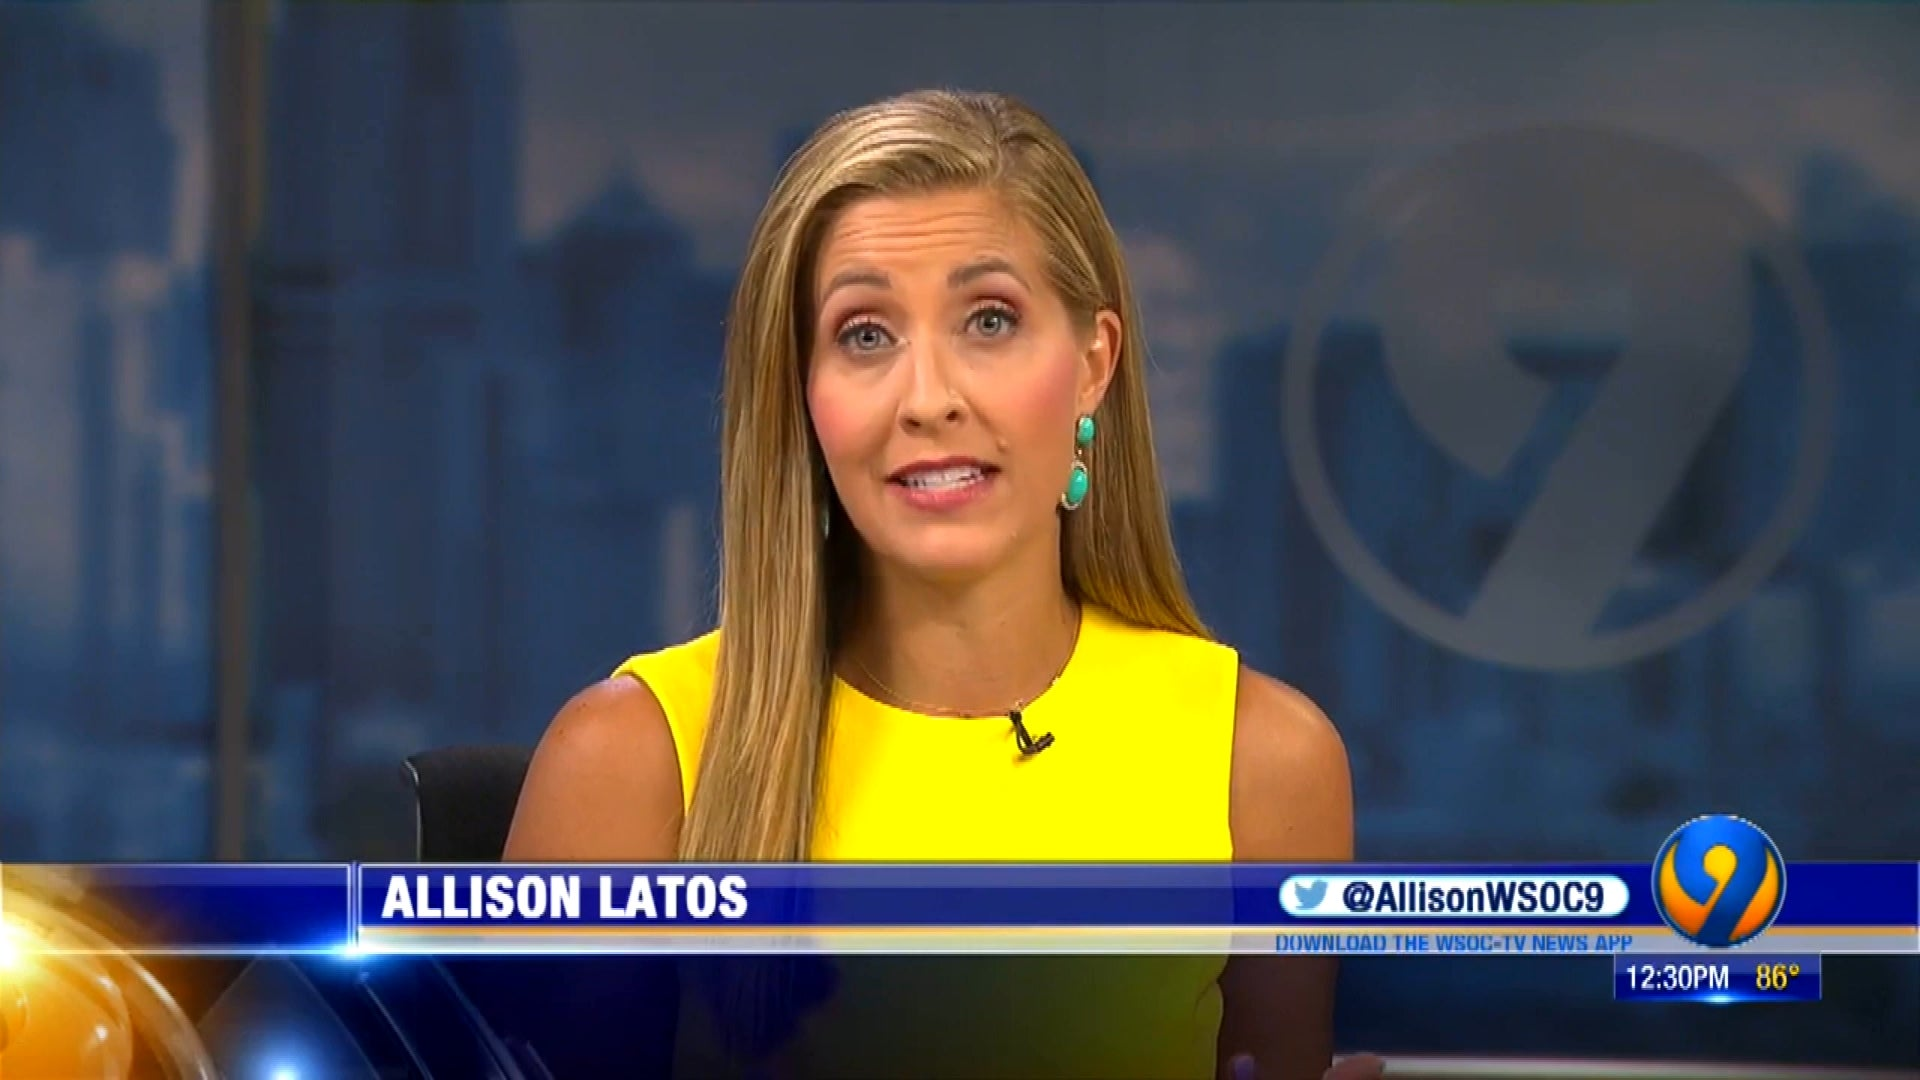 TV News Anchor Allison Latos Saved by Viewer Who Noticed Cancerous Lump on Neck